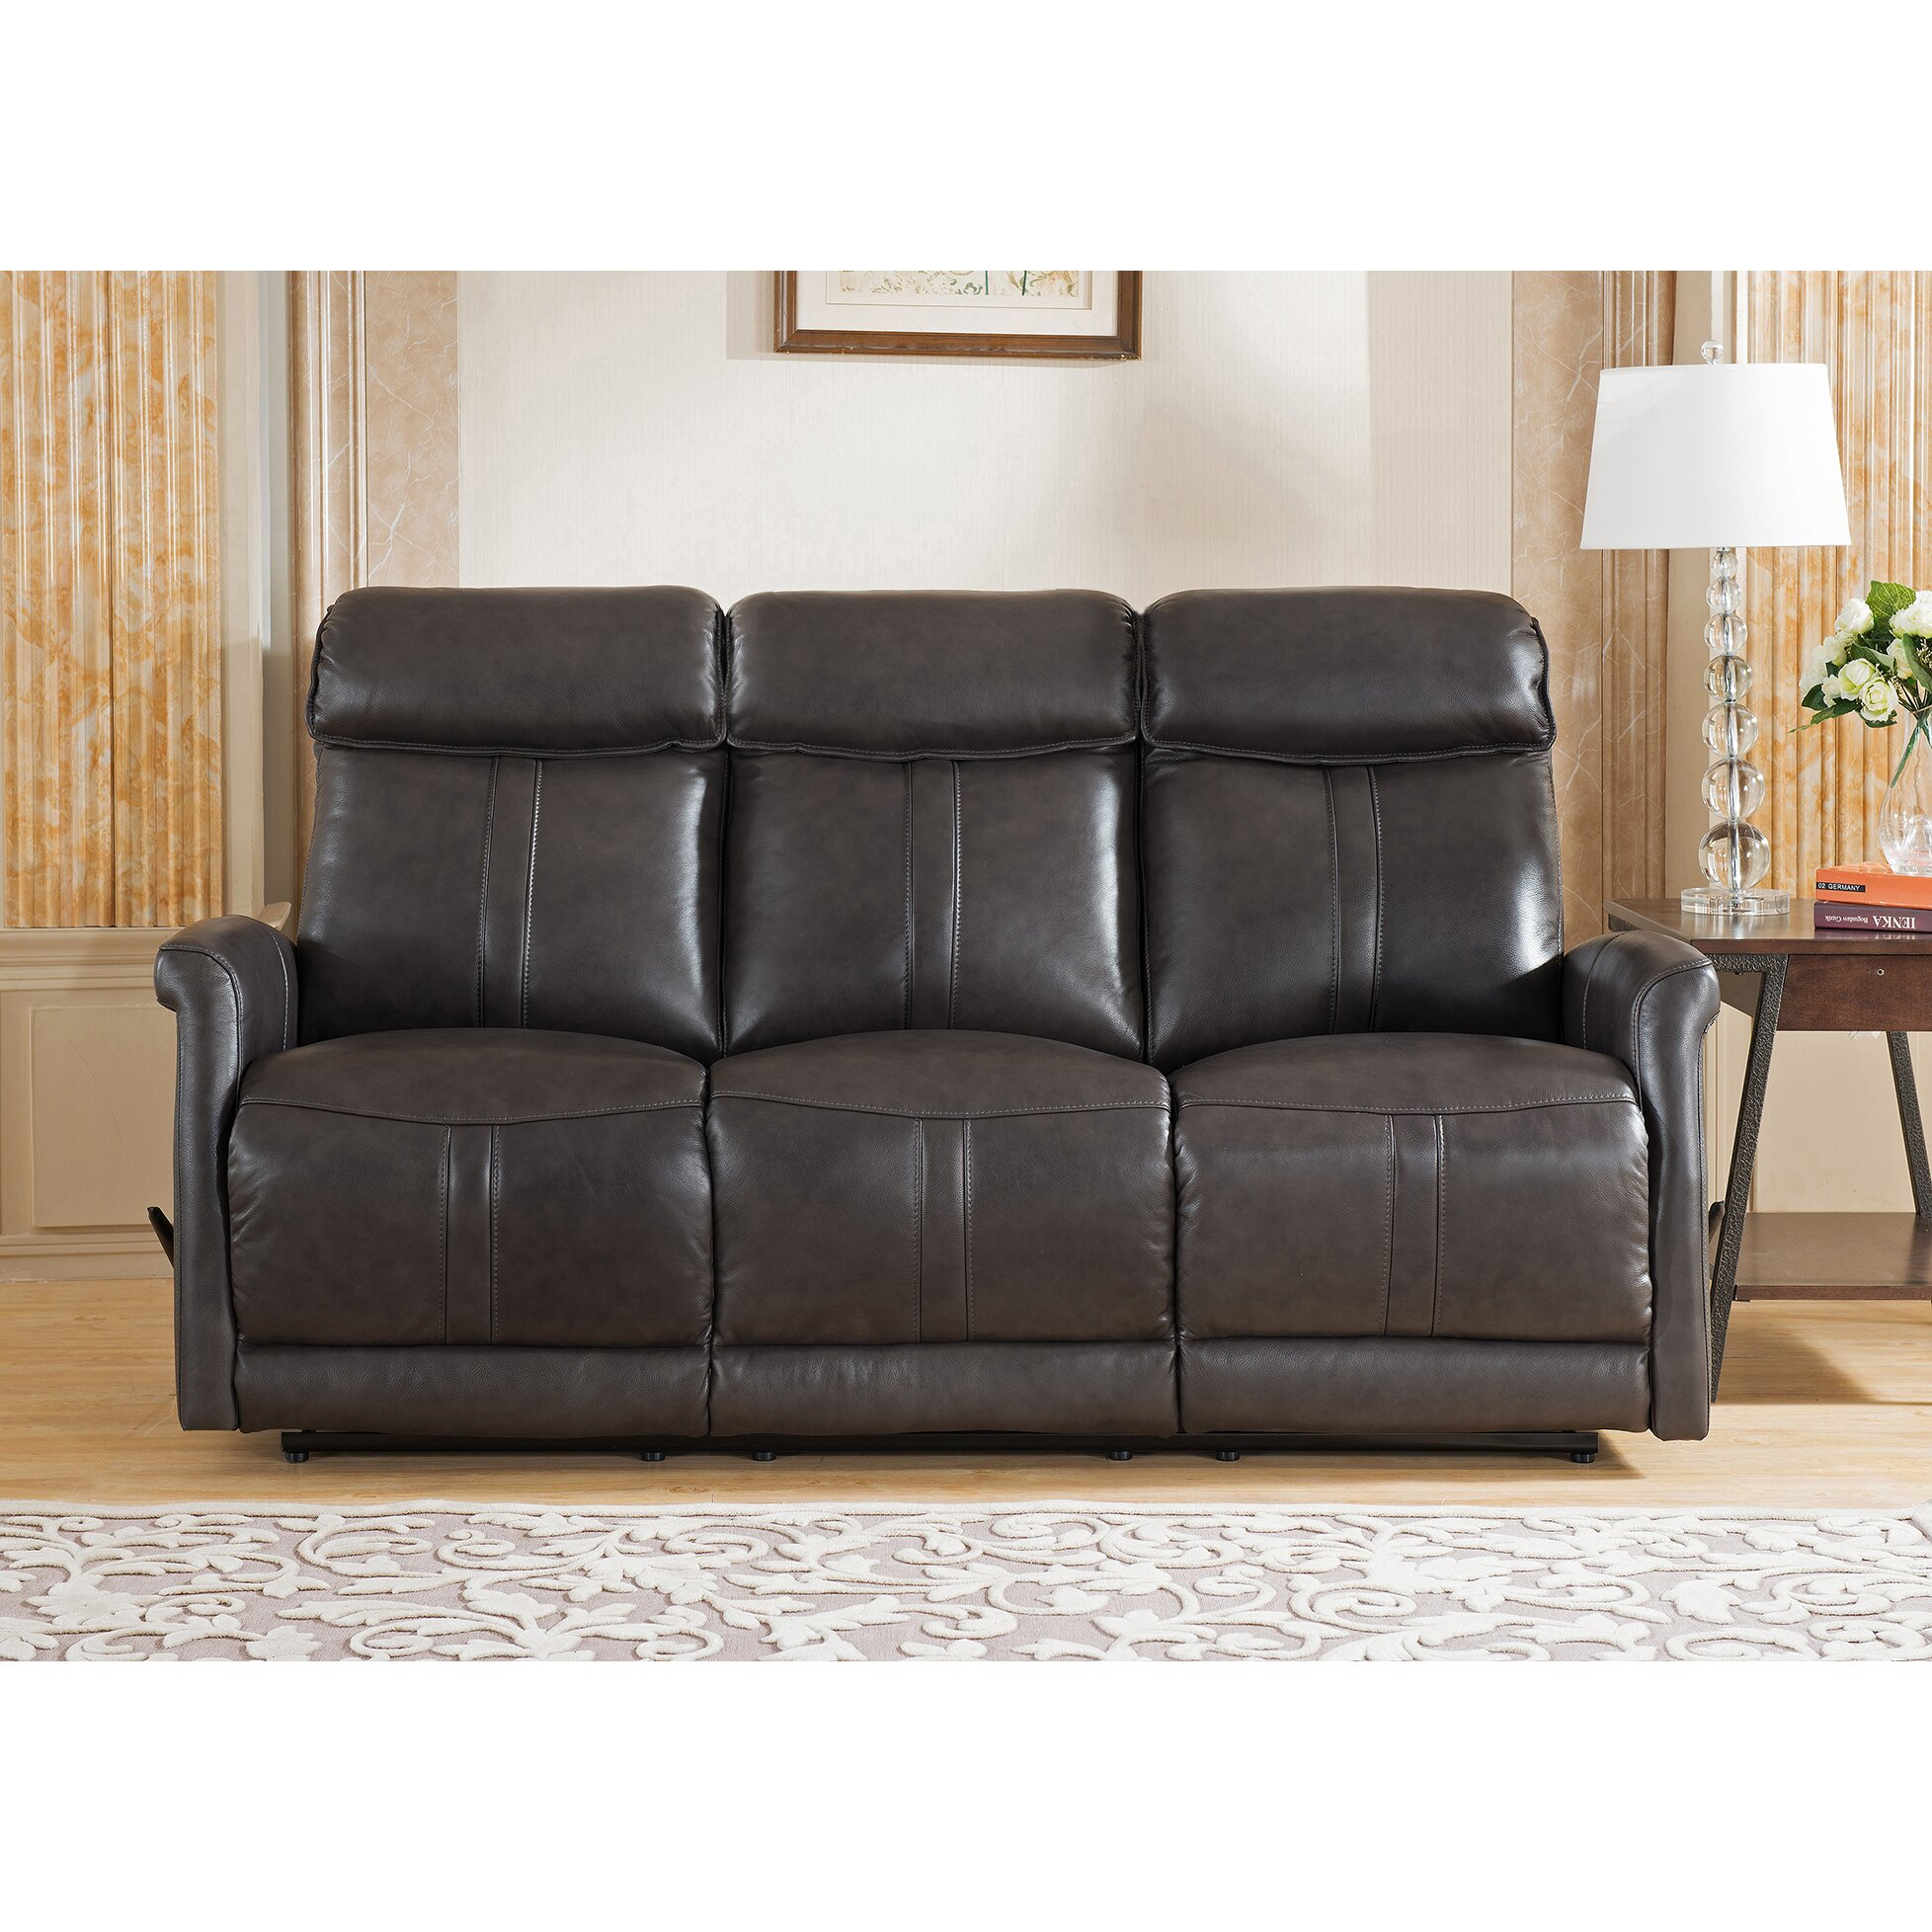 Amax mosby 3 piece leather living room set wayfair for Three piece living room set